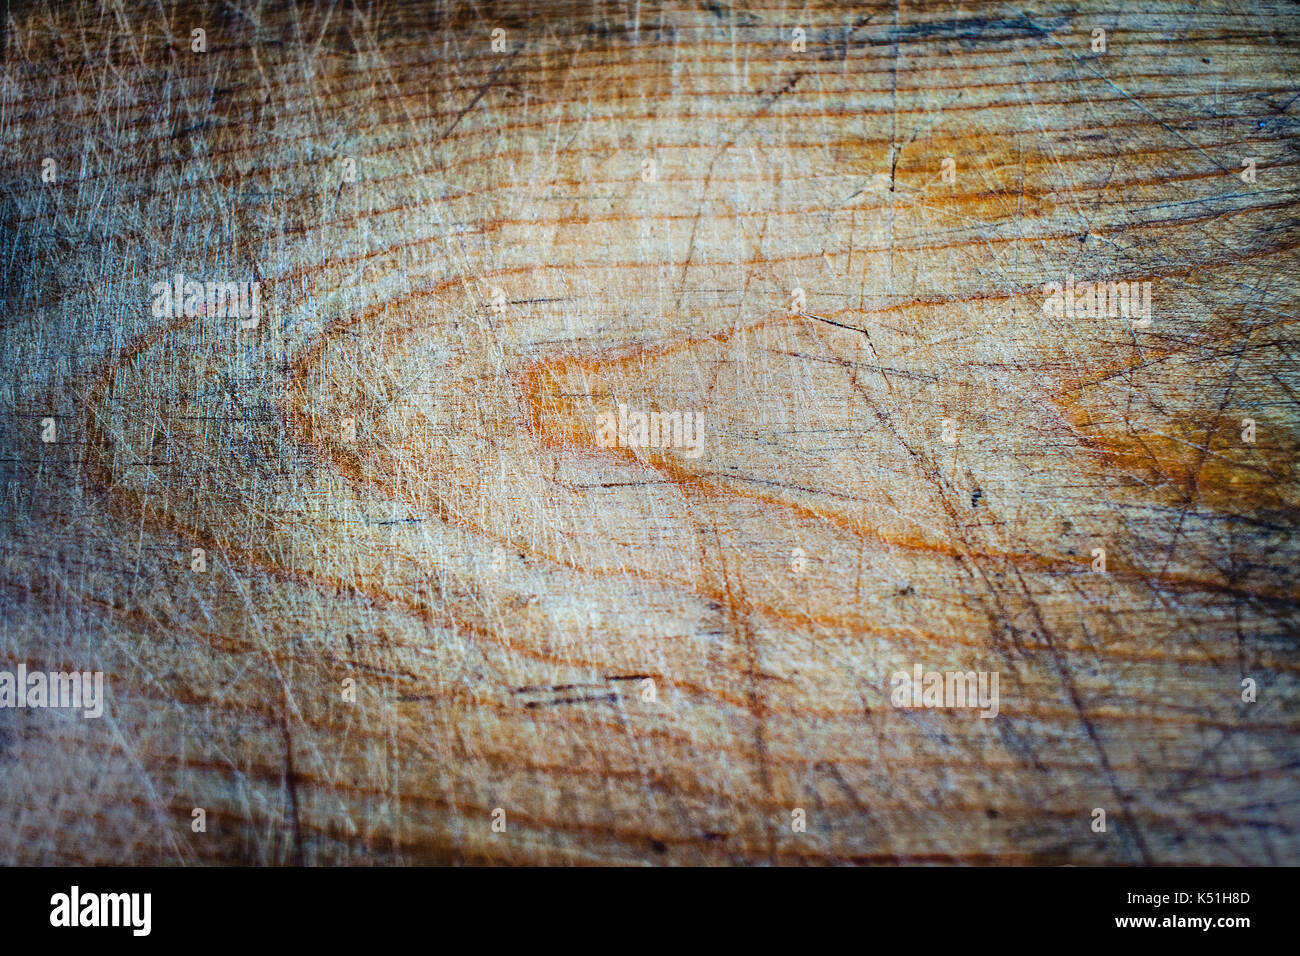 old wooden board damage and scratches close-up - Stock Image